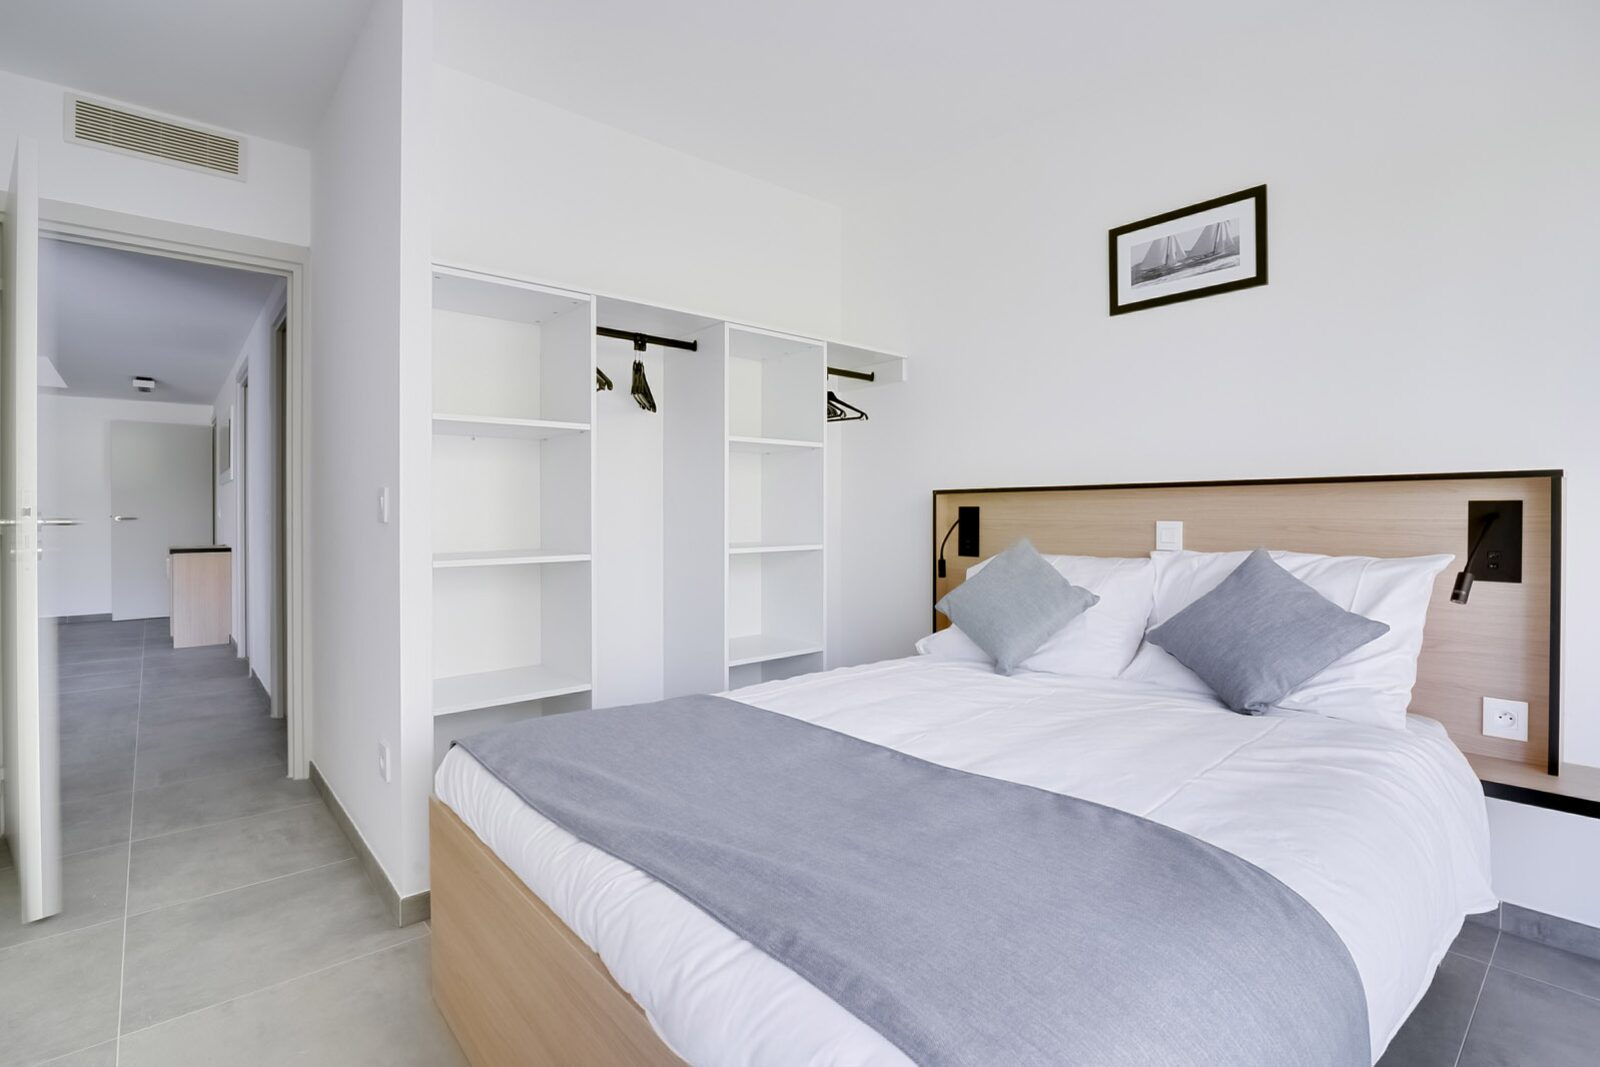 New deluxe suite for 8 people with 3 bedrooms